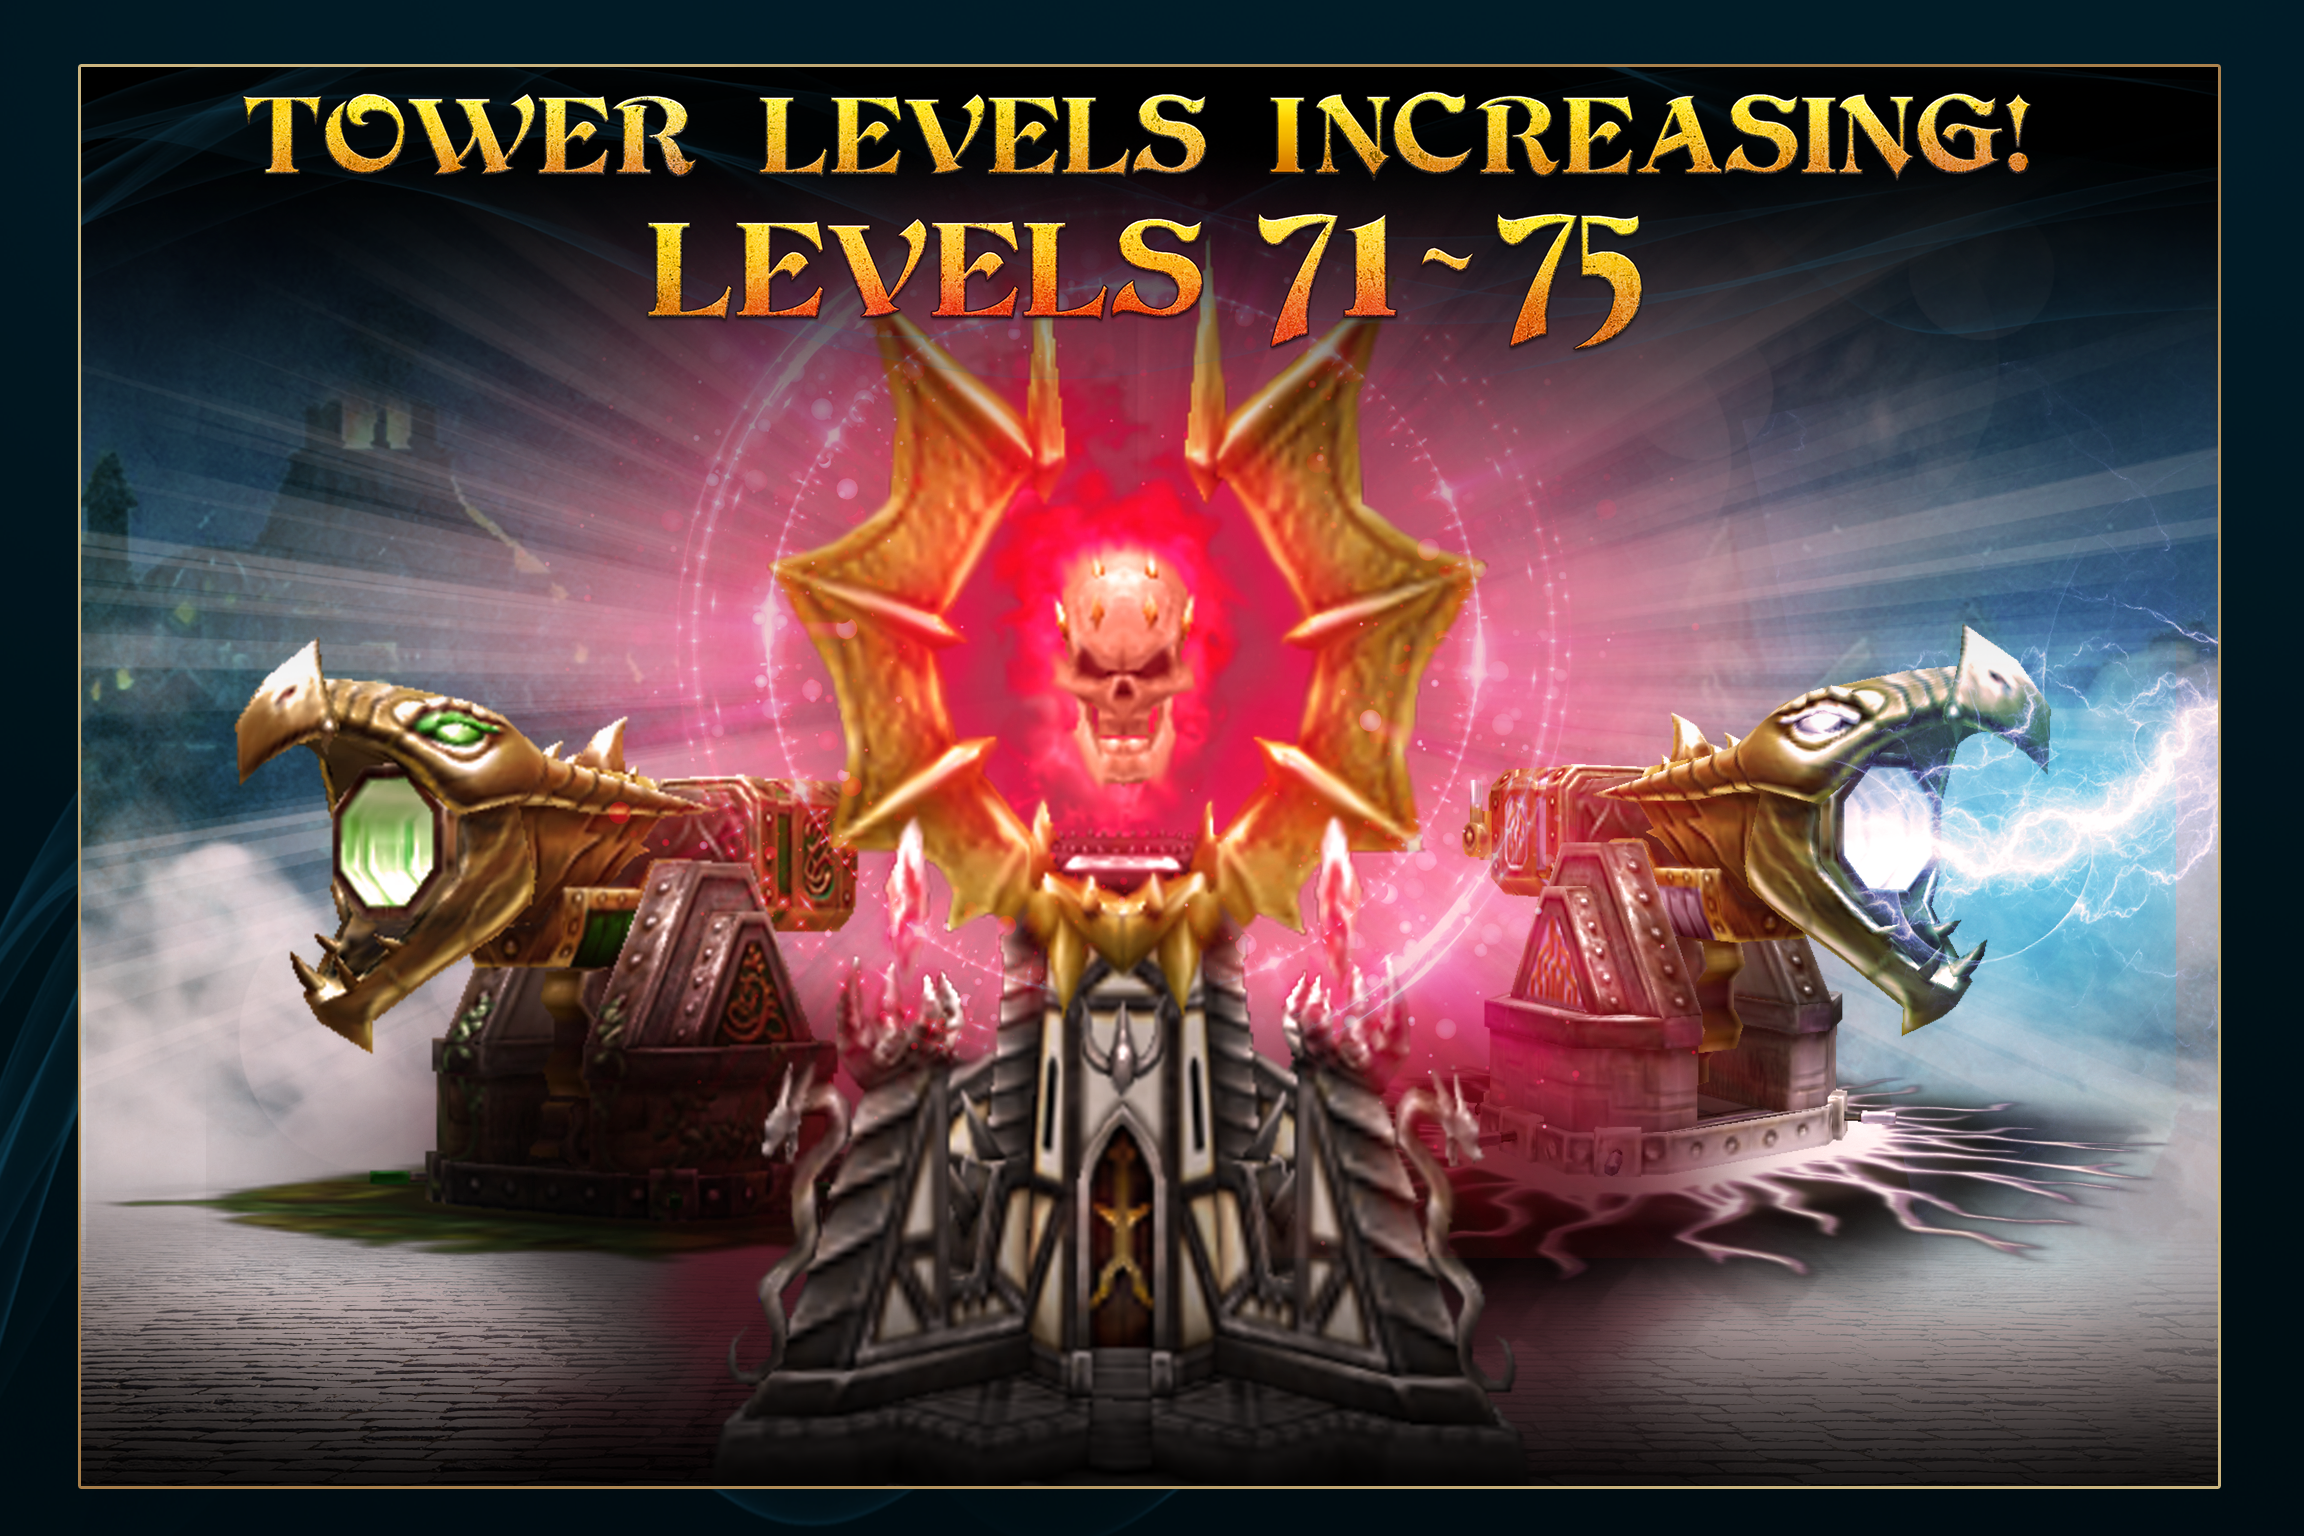 WD: Tower Levels 71 - 75